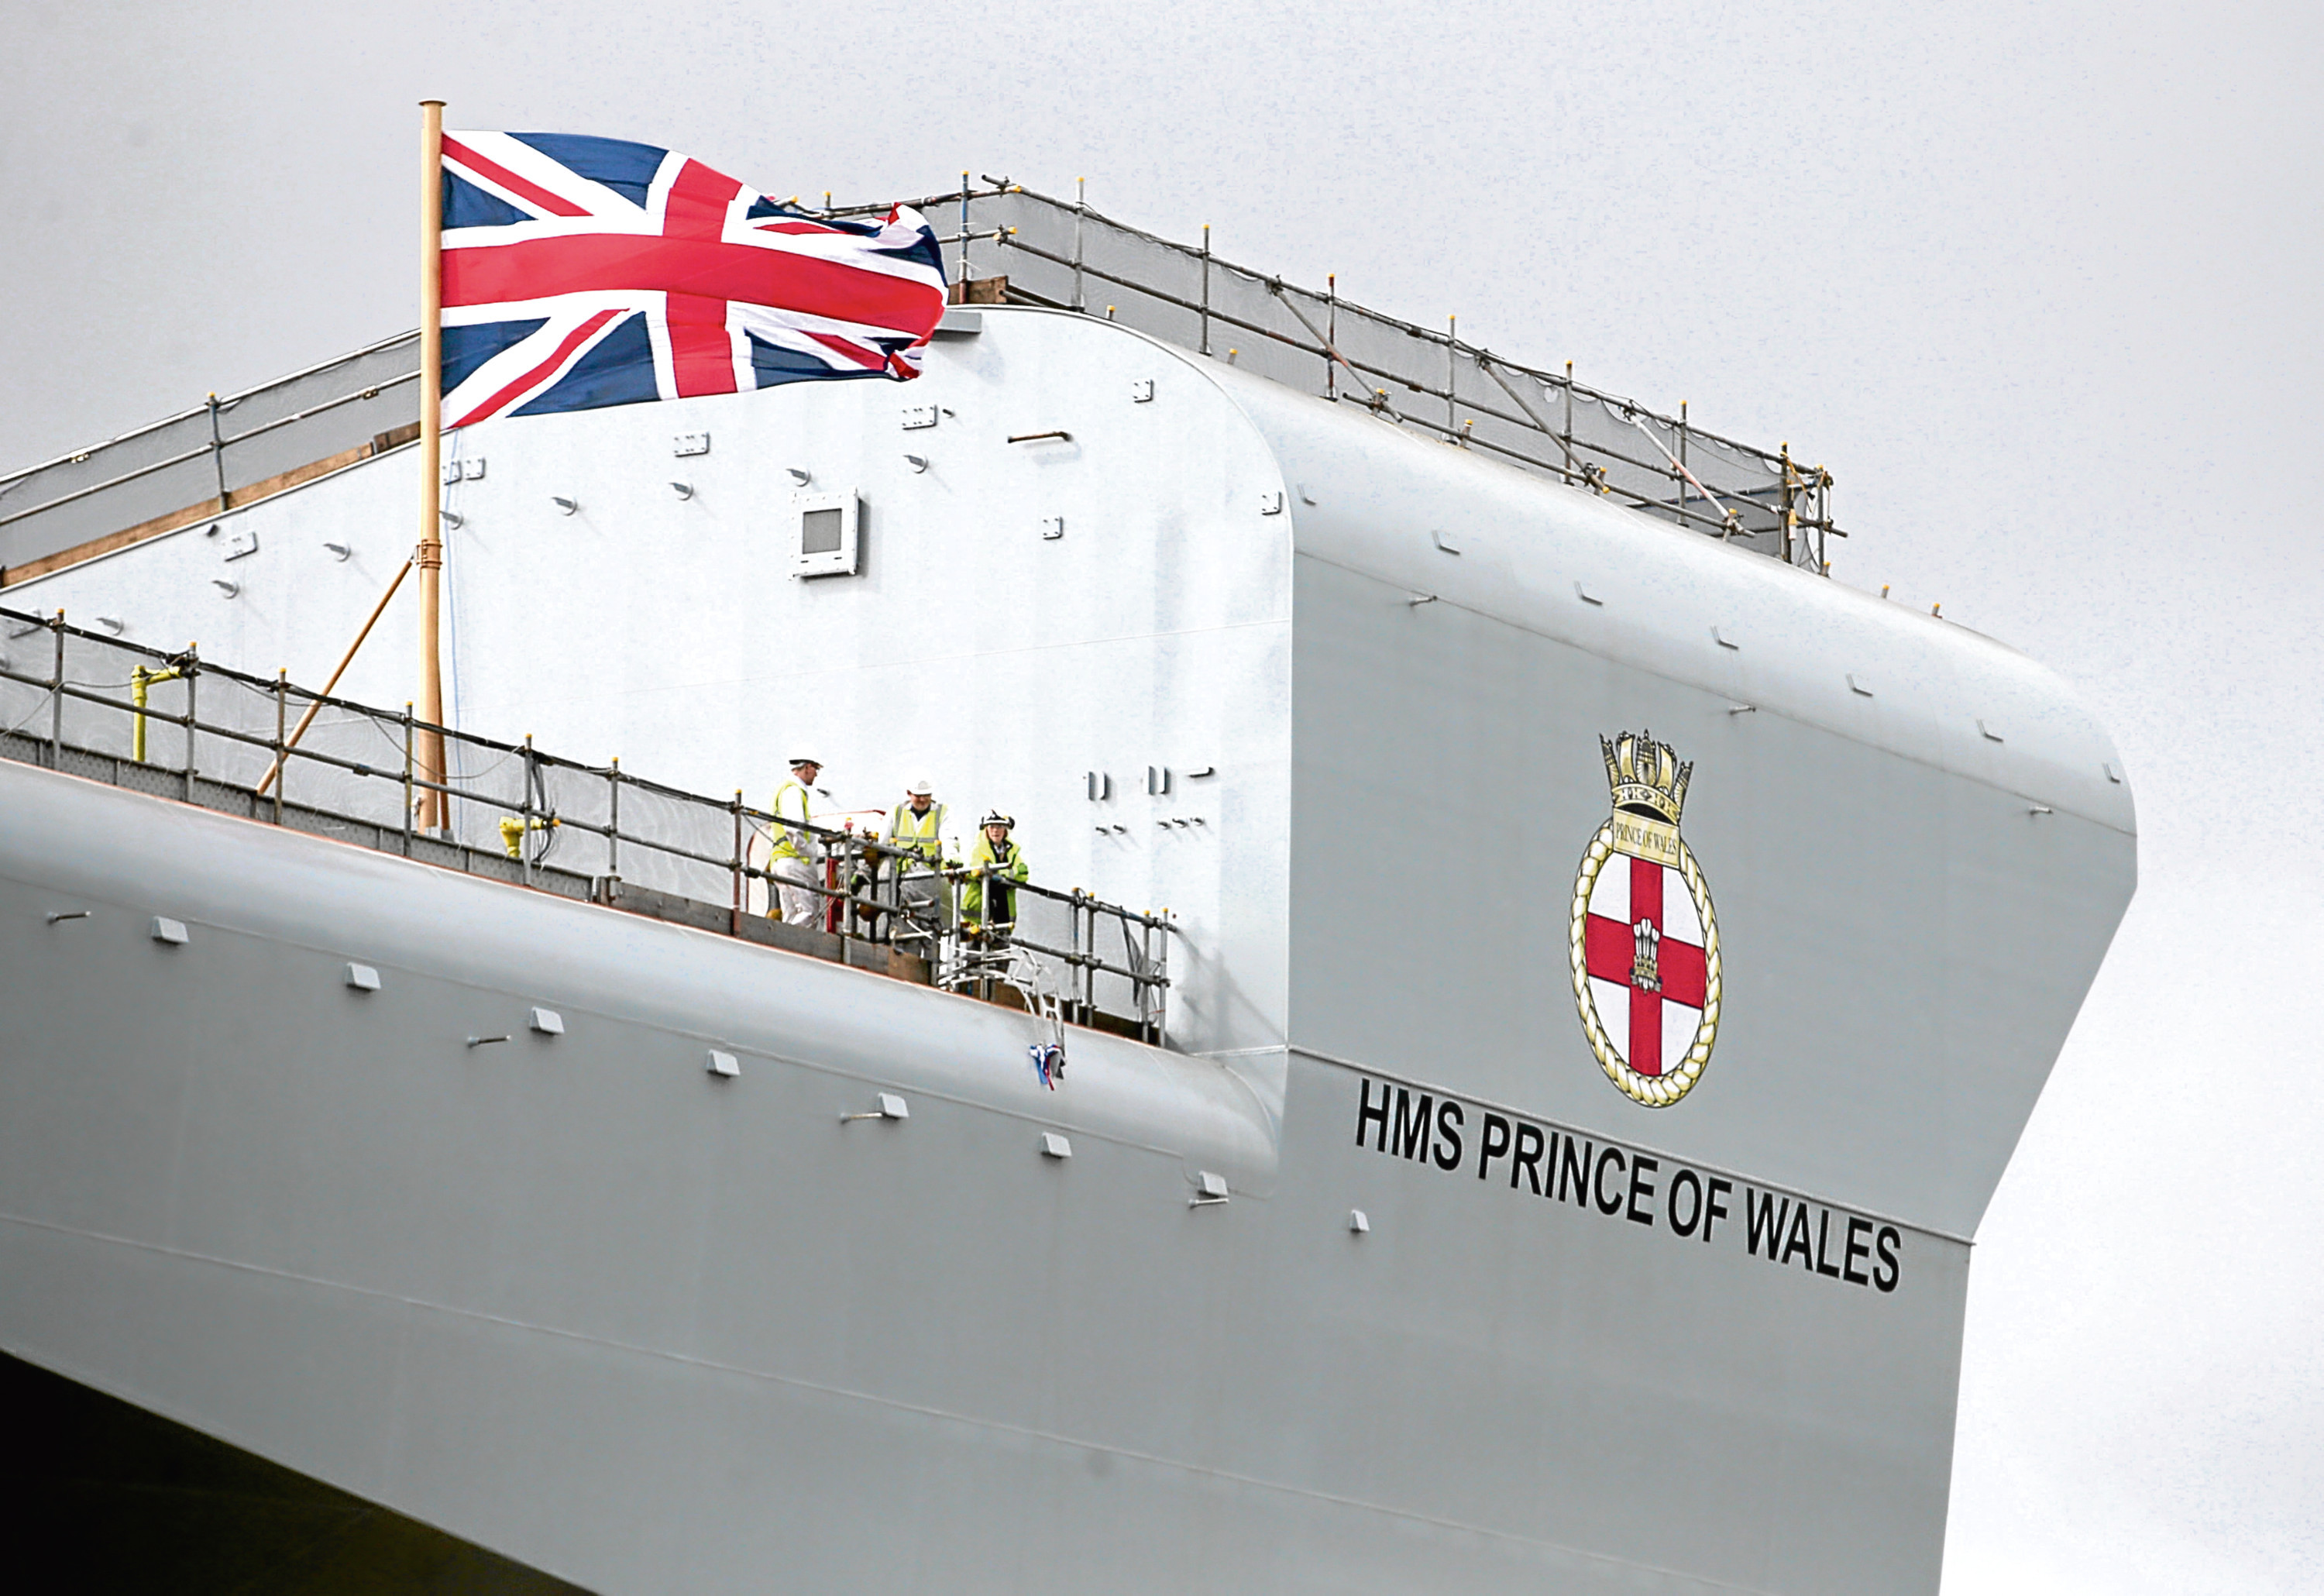 The HMS Prince of Wales aircraft carrier was assembled at Rosyth